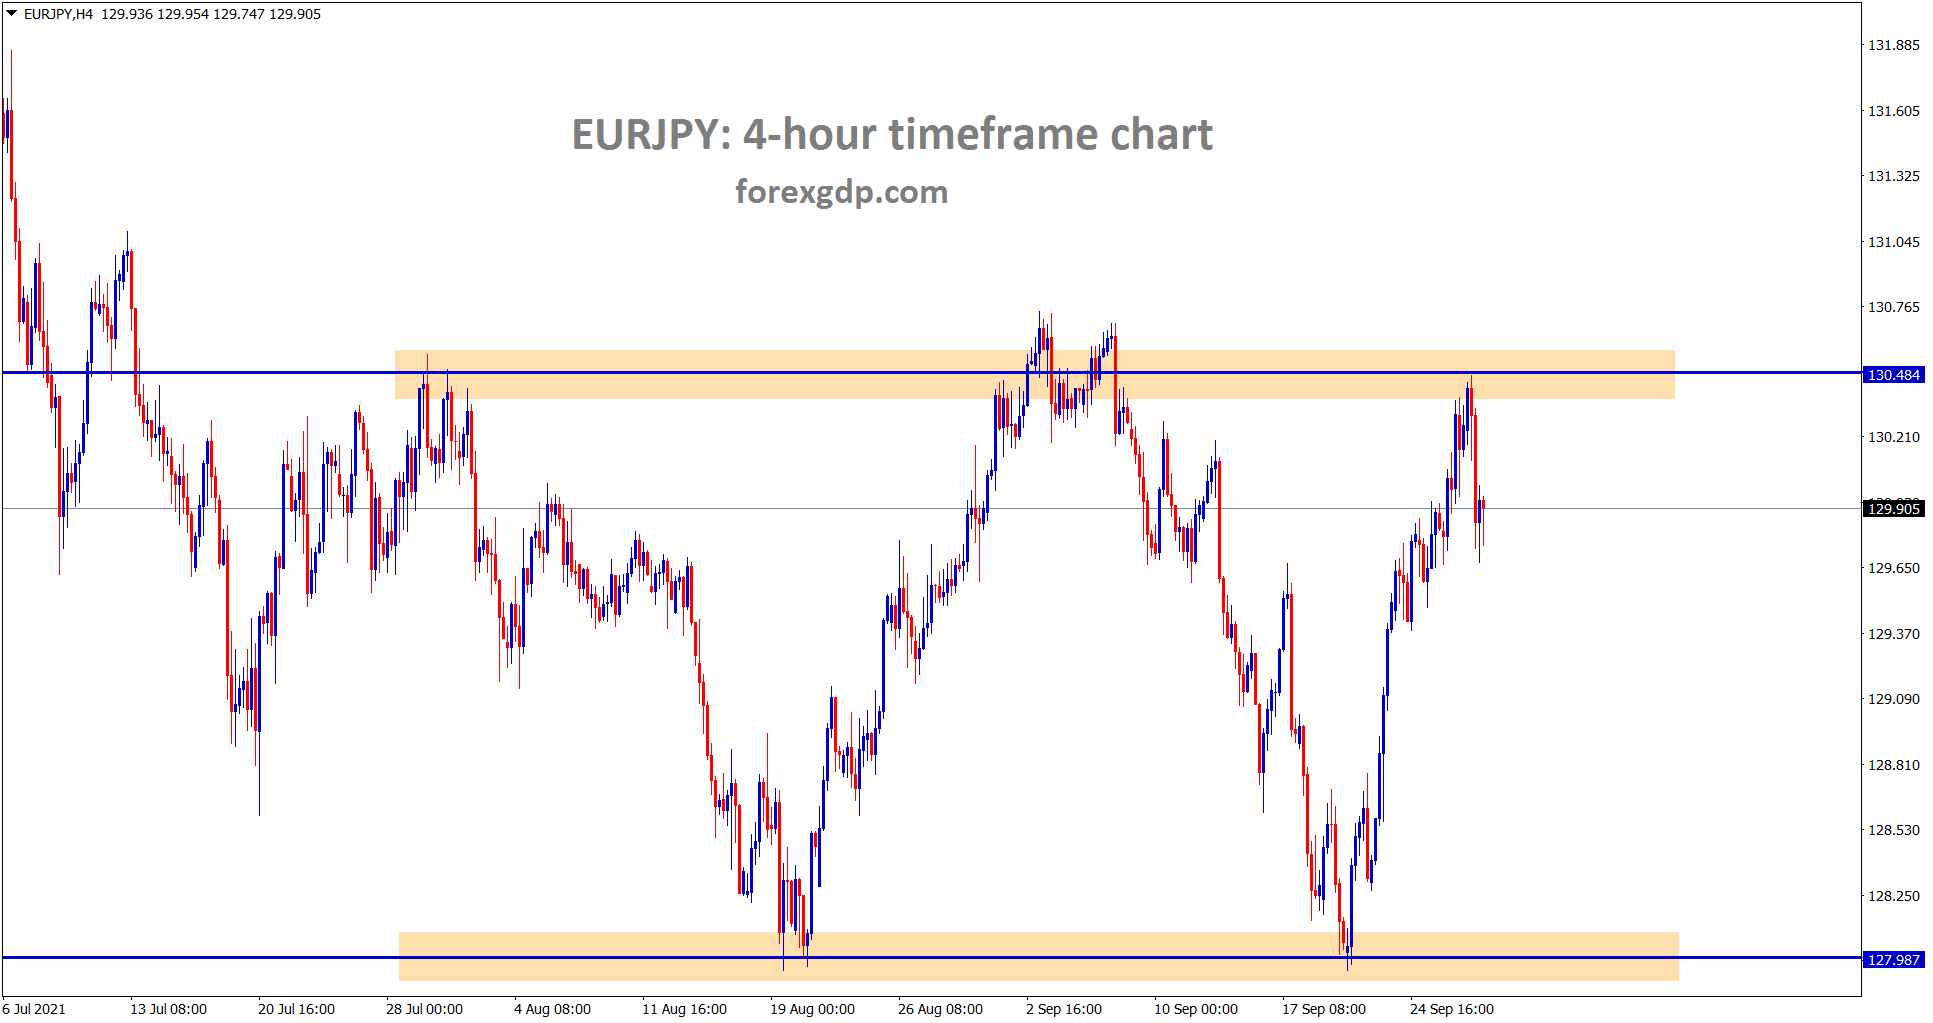 EURJPY is making a correction from the resistance area